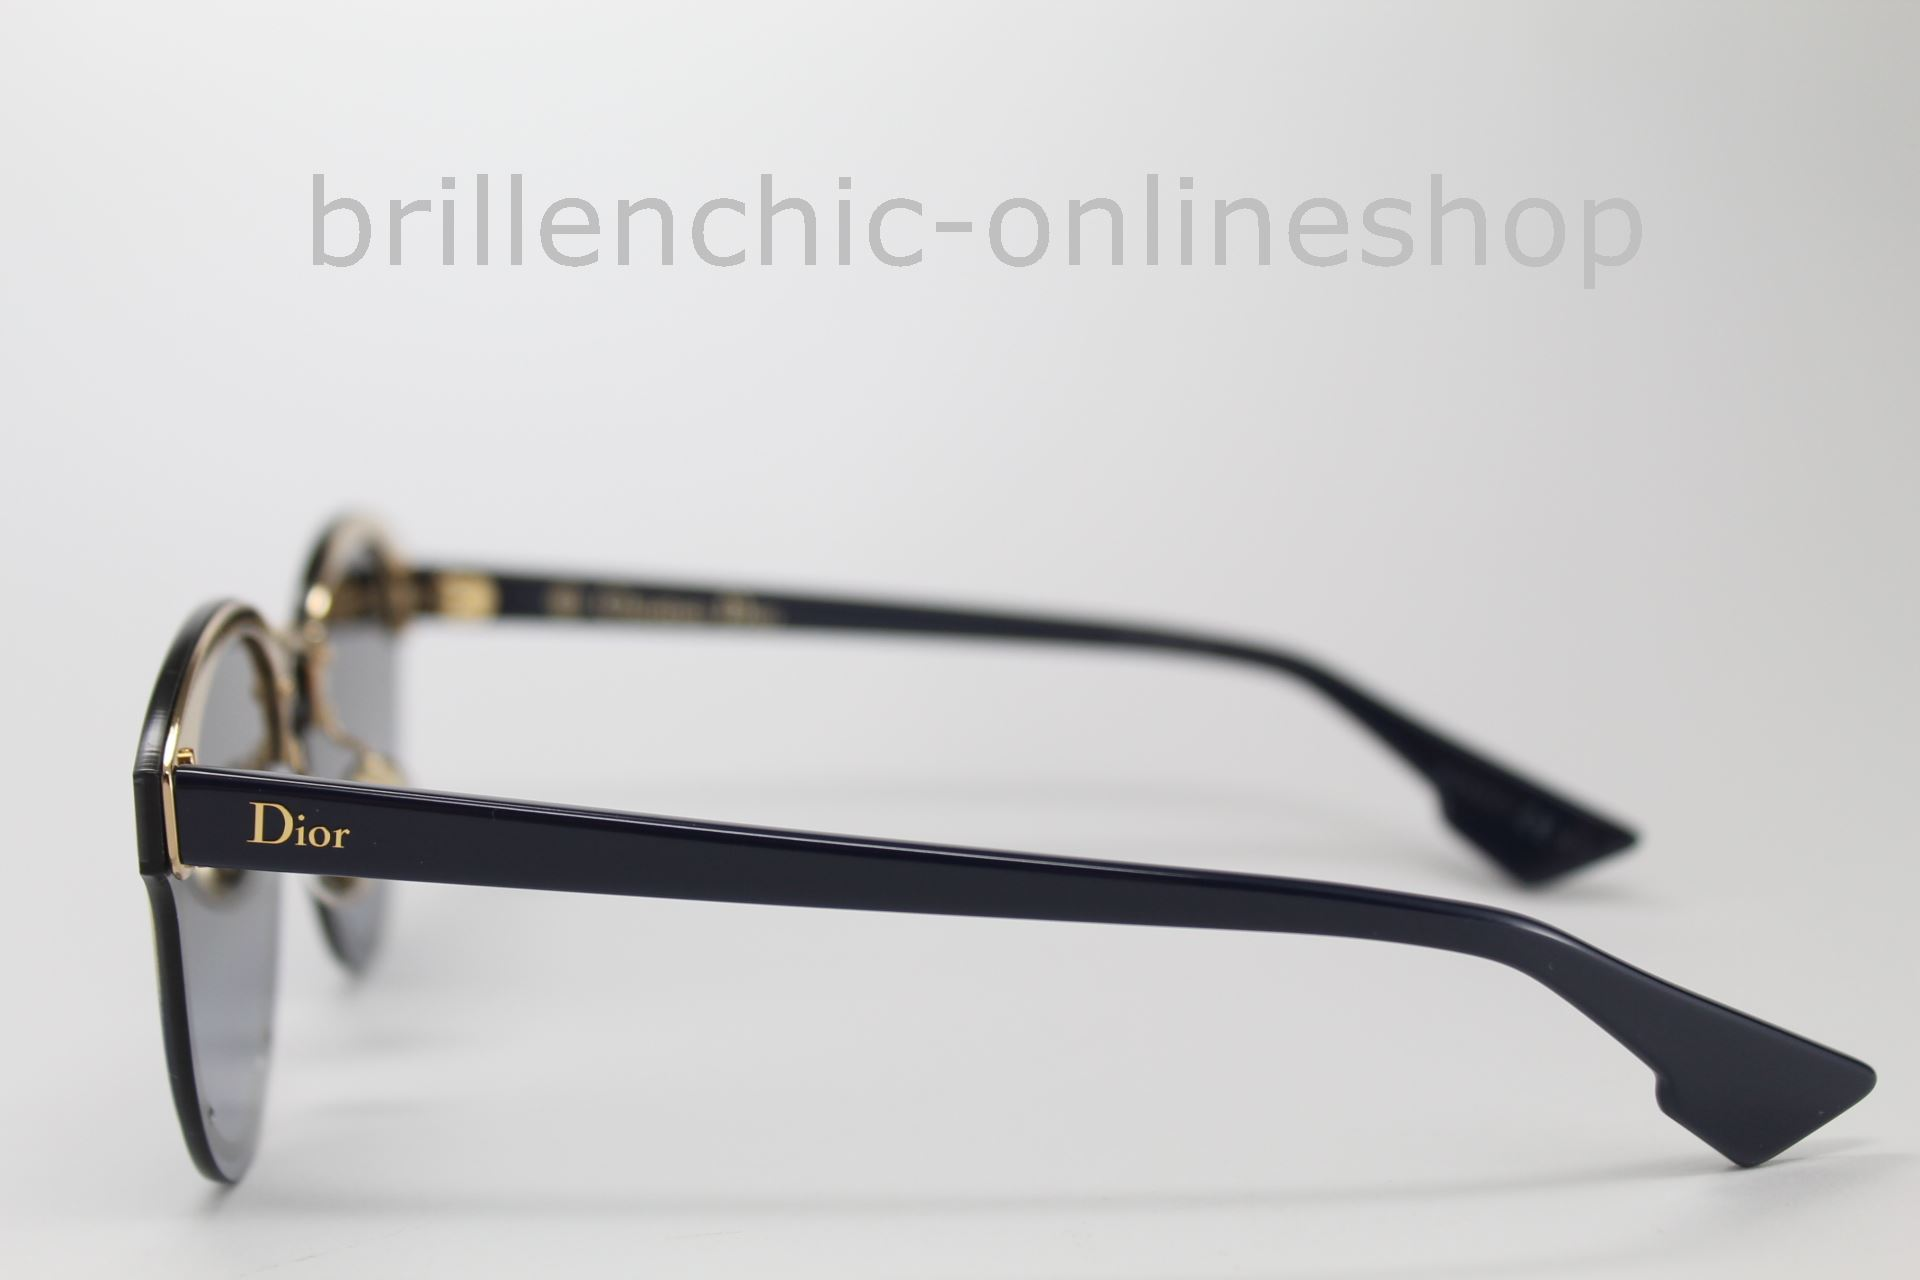 96fd23f146 Brillenchic-onlineshop in Berlin - DIOR NIGHTFALL LKSX5